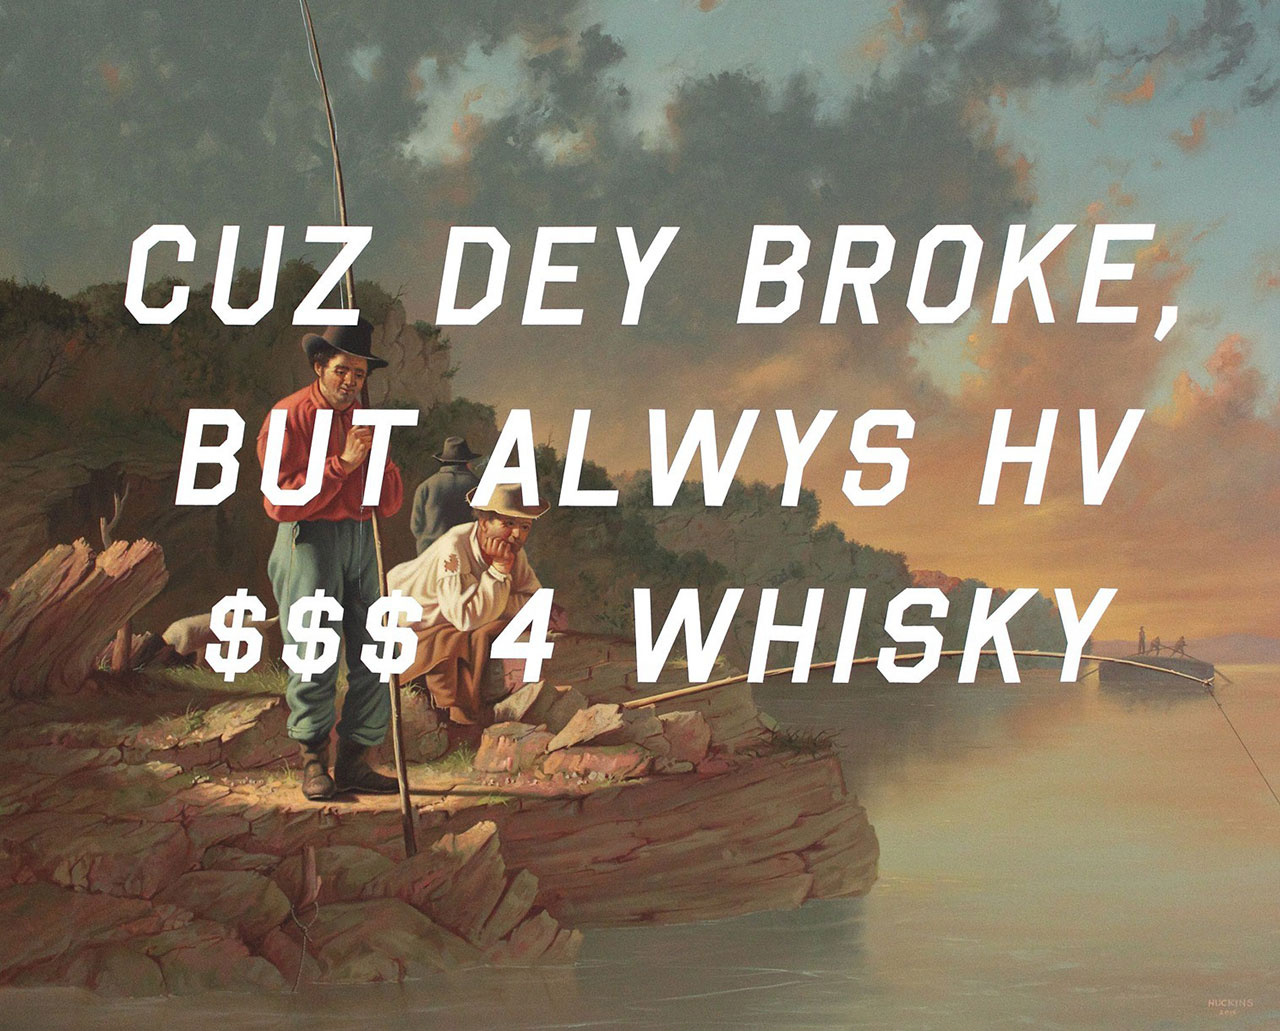 Shawn Huckins, Fishing On The Mississippi: Because They Broke, But Always Have Money For Whiskey, acrylic on canvas, 32 x 40 in (81 x 102 cm), 2015. Private collection.